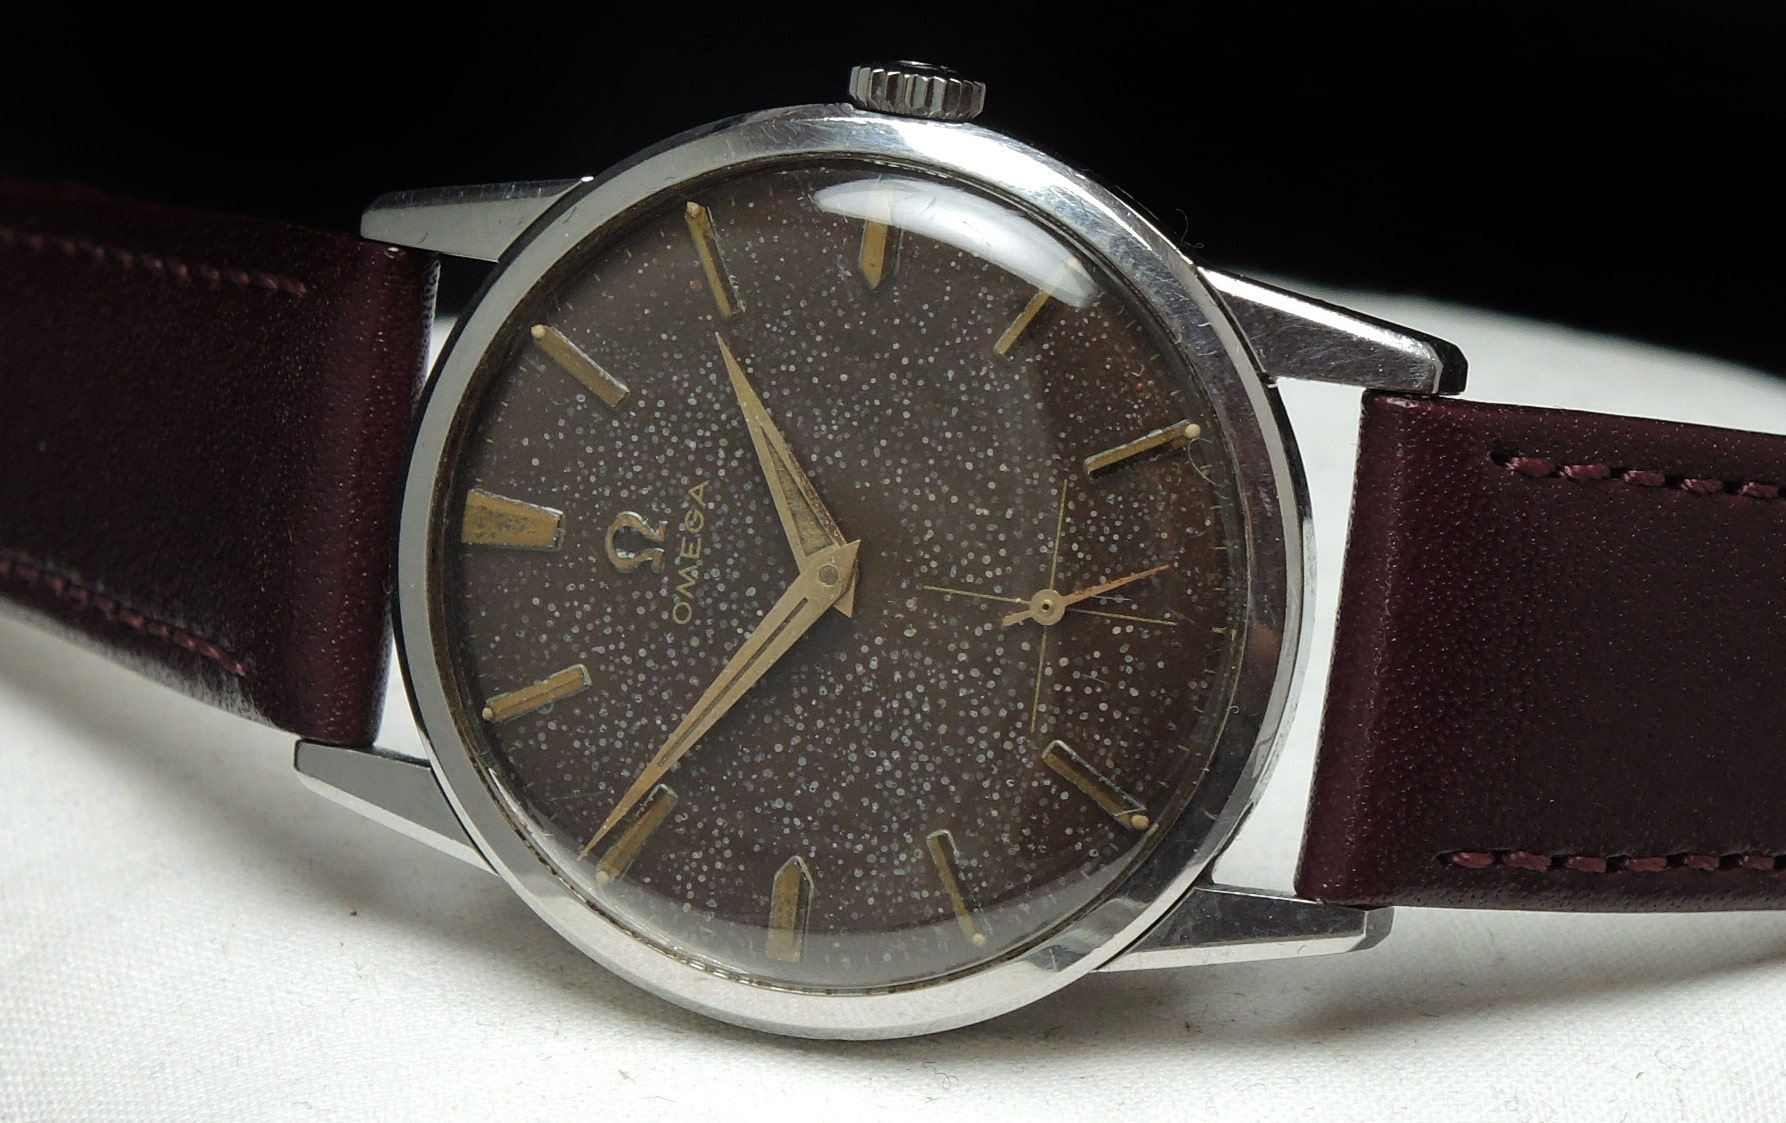 Chocolate Dial Omega Handwinding Watch Vintage